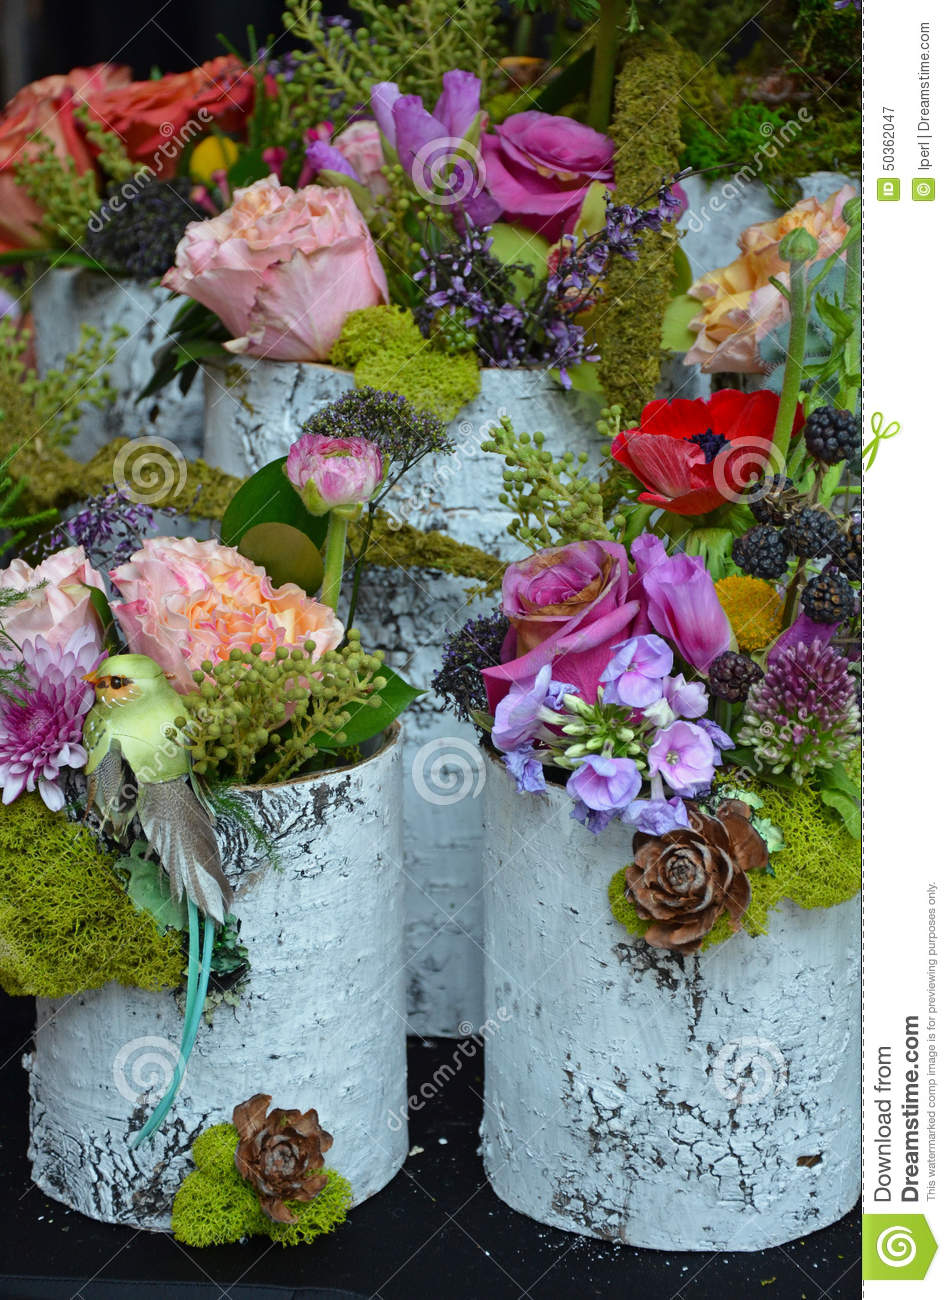 Colorful Spring Flower Arrangements Stock Image Image Of Colorful